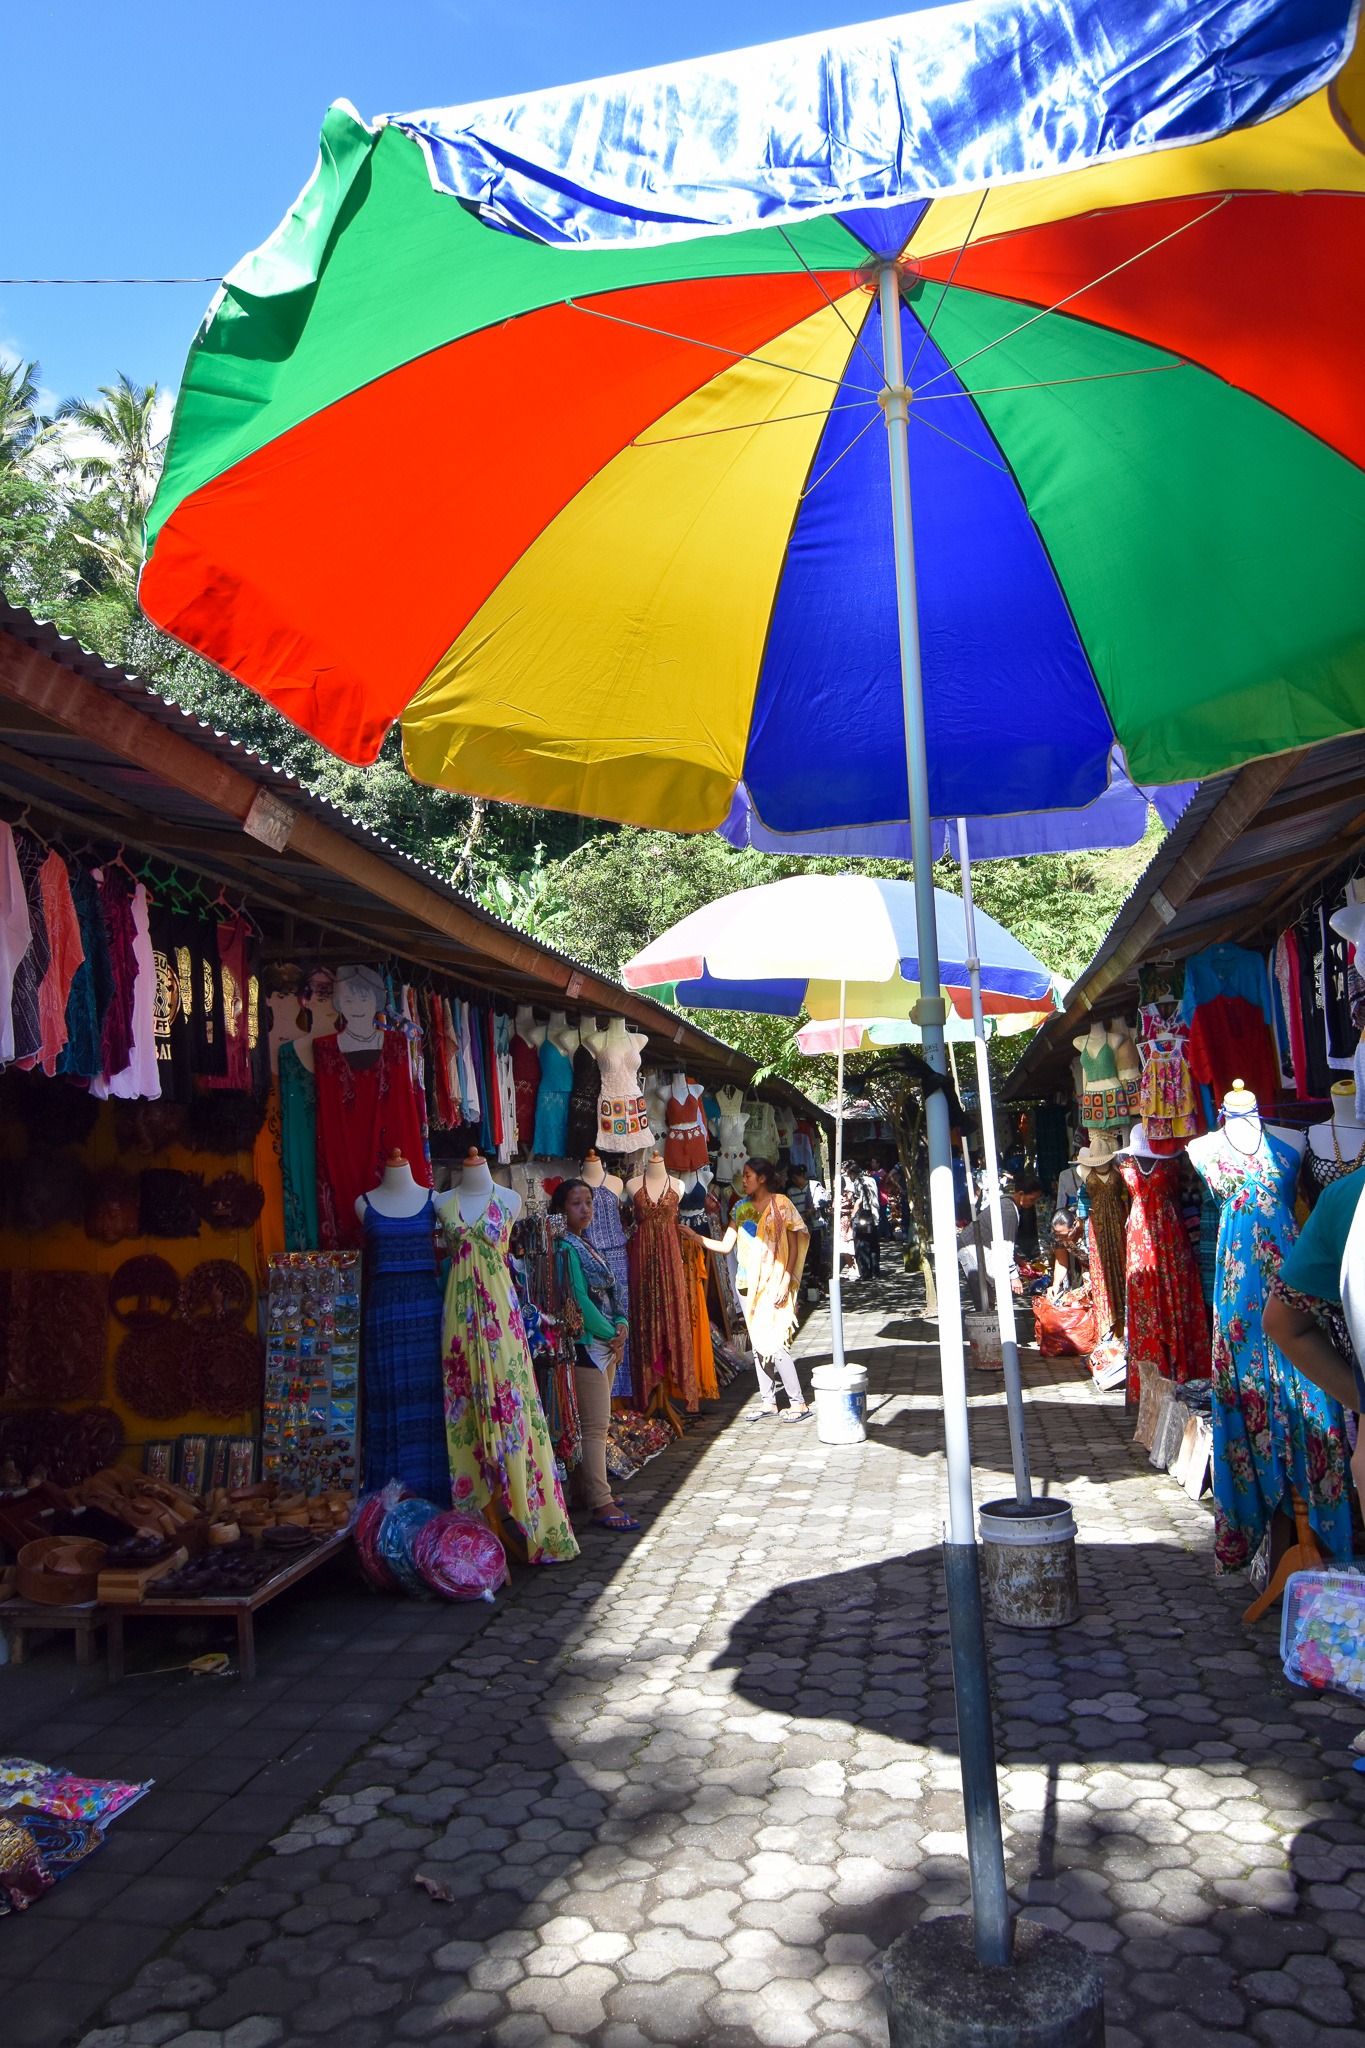 Outside this temple is a market full of vendors selling all kinds of Balinese stuff like clothes, jewelry, bags, etc.